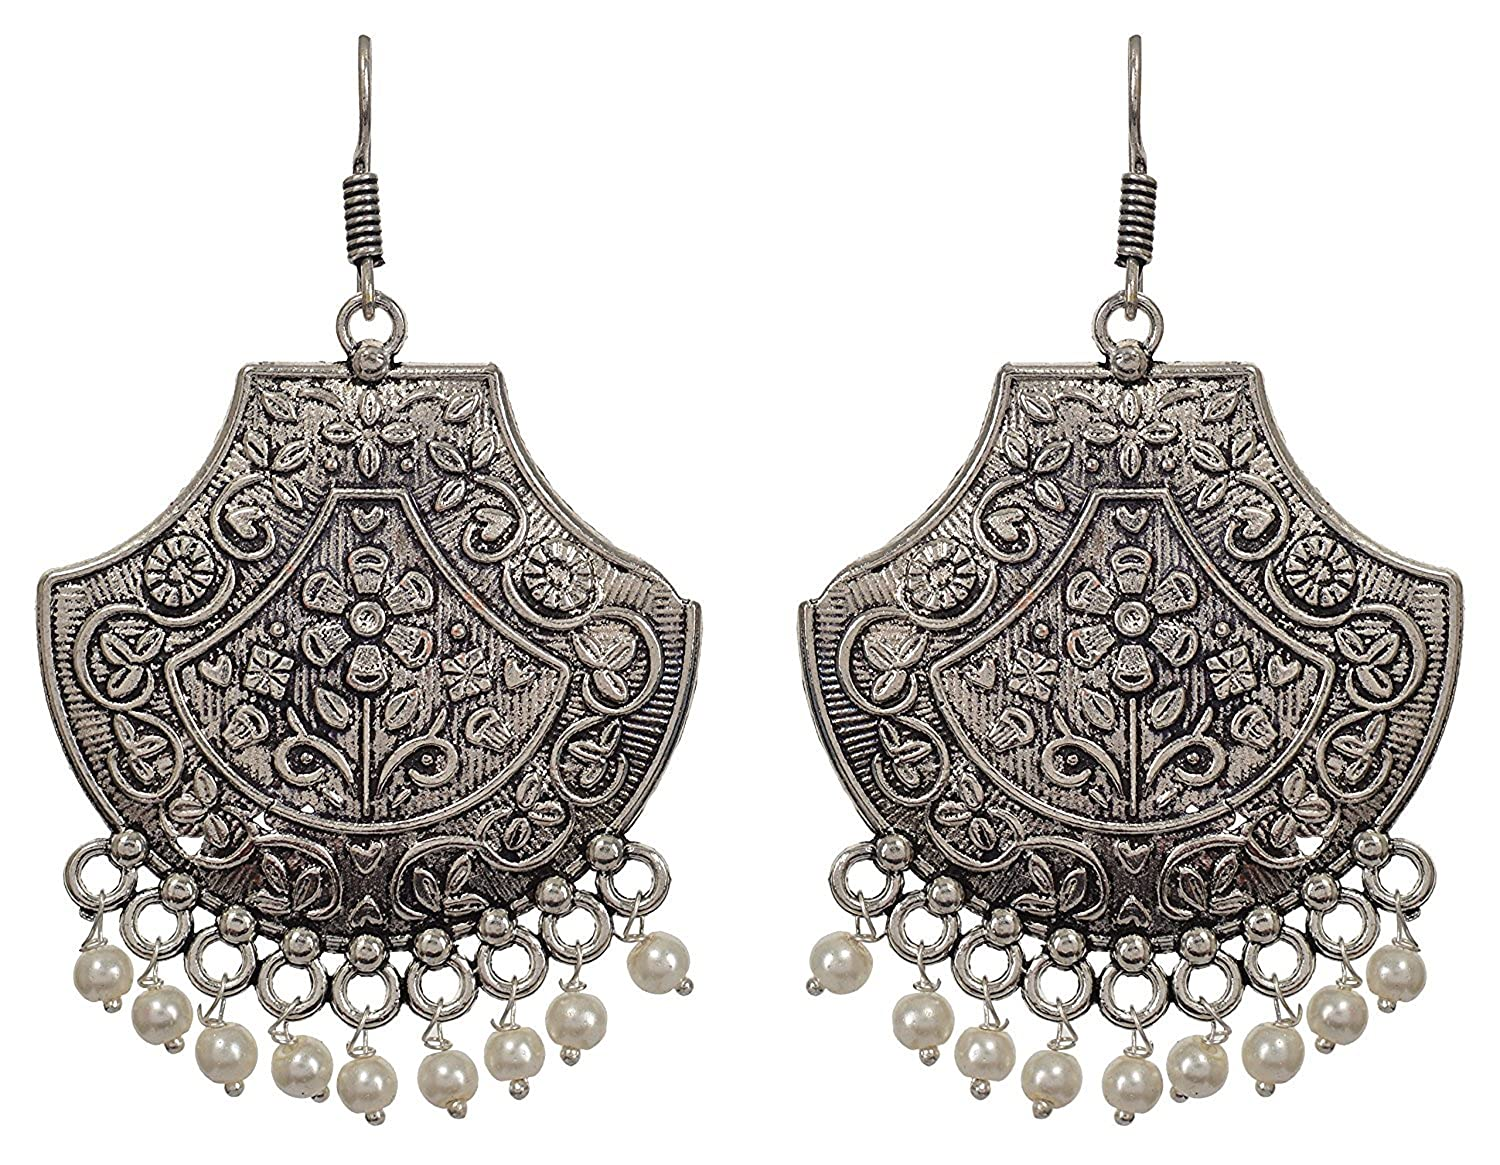 It/'s a White Color Beads Silver Style Dangle Earrings for Women /& Girls